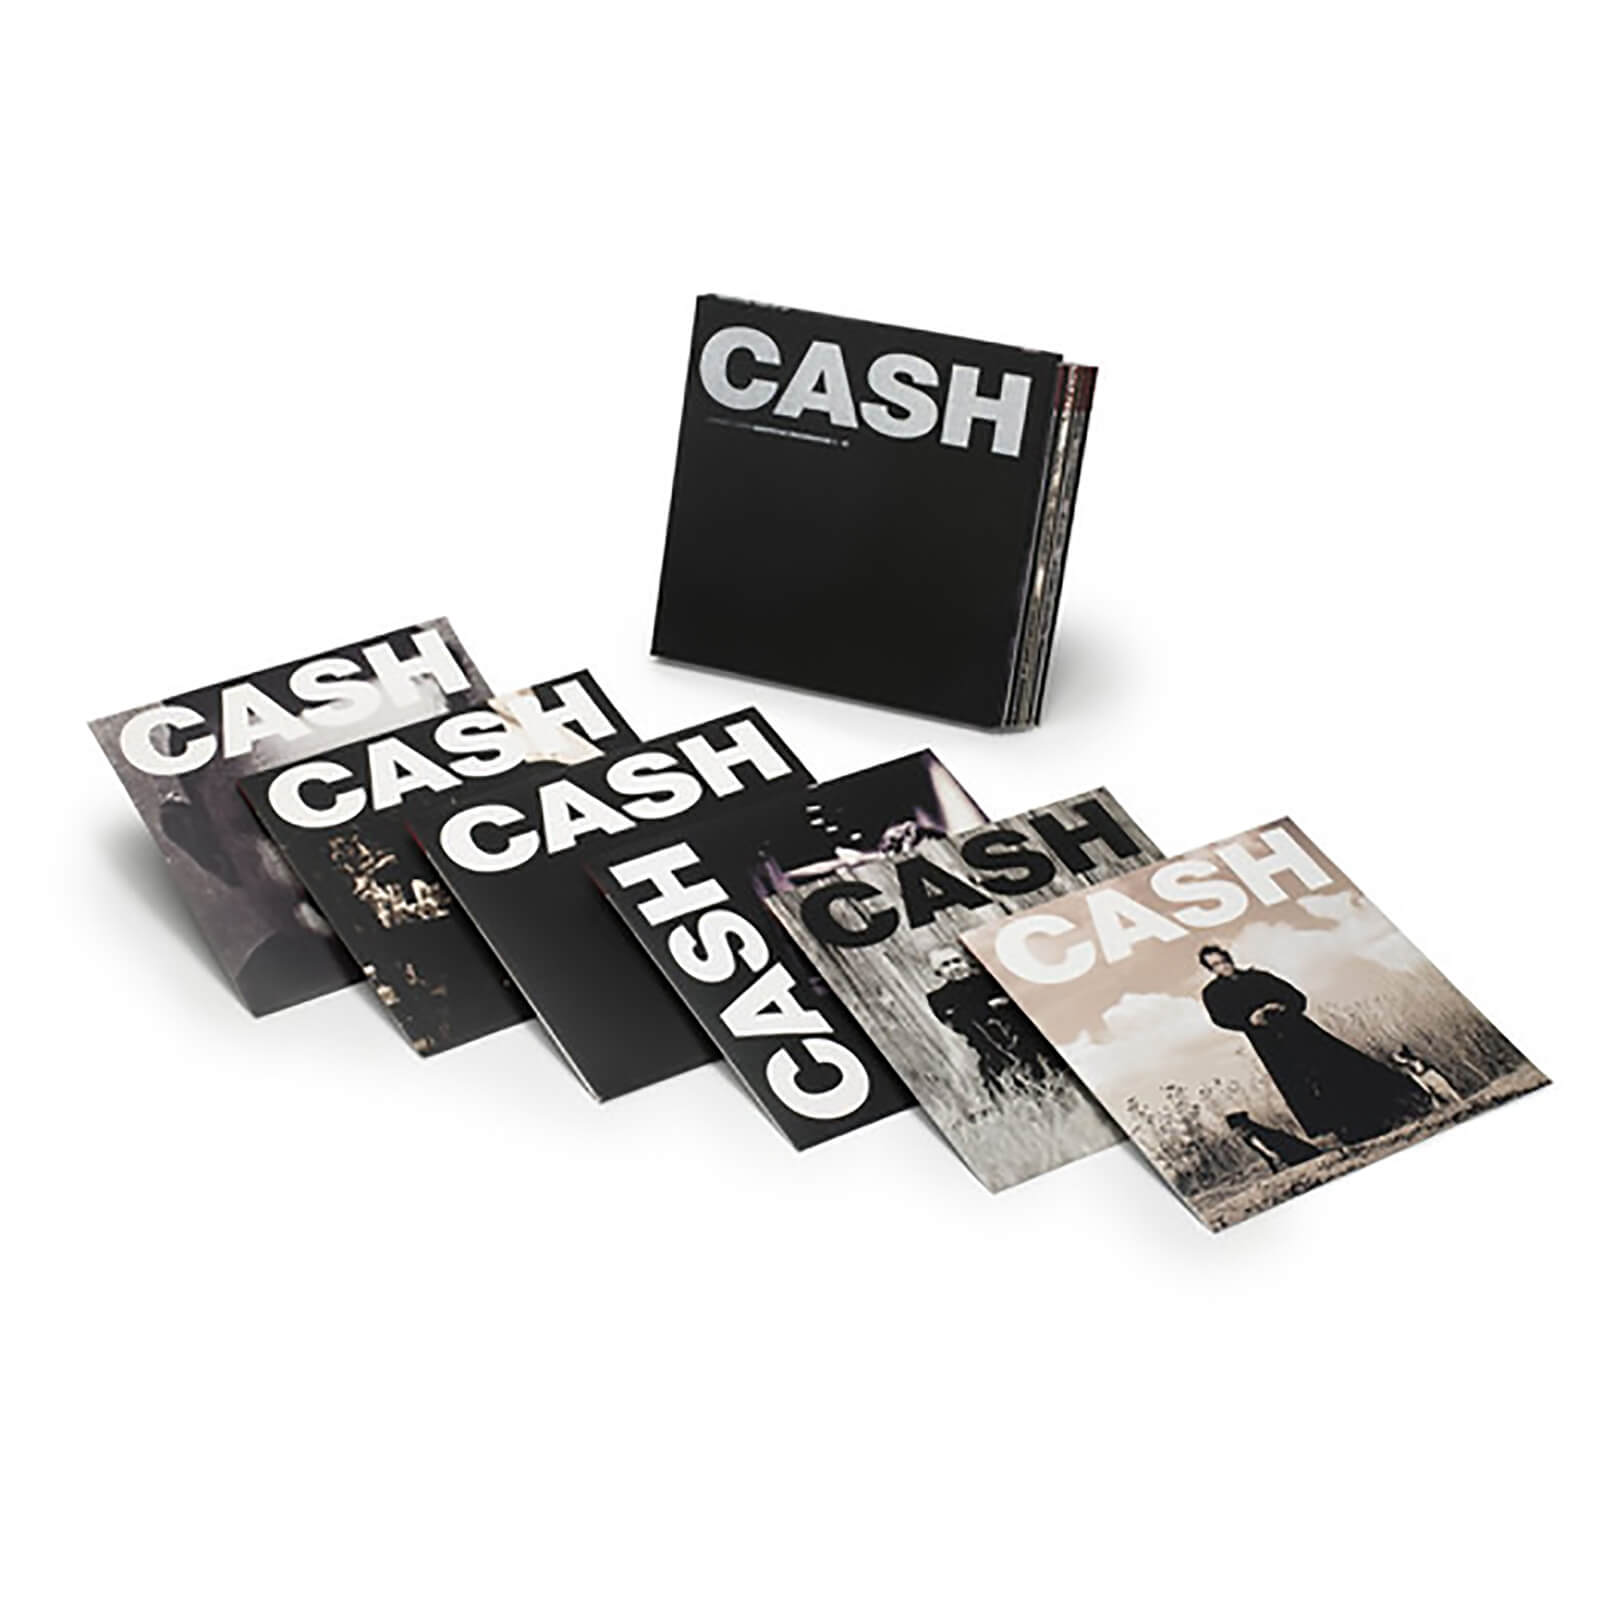 Johnny Cash - American Recordings - Vinyl Box Set - Vinyl